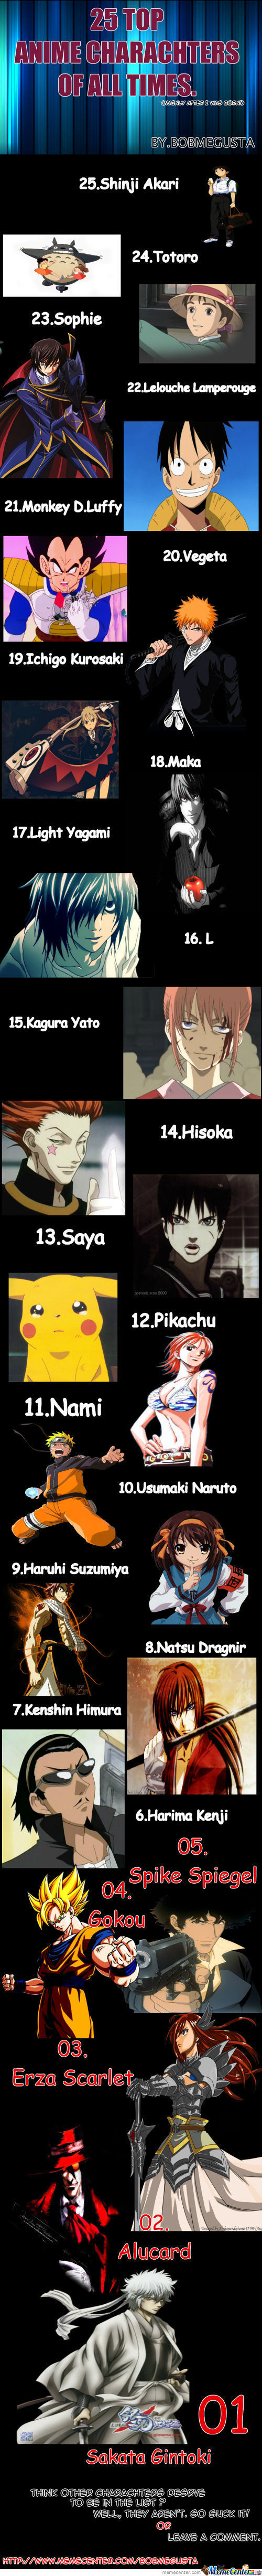 My 25 Top Anime Charachters.